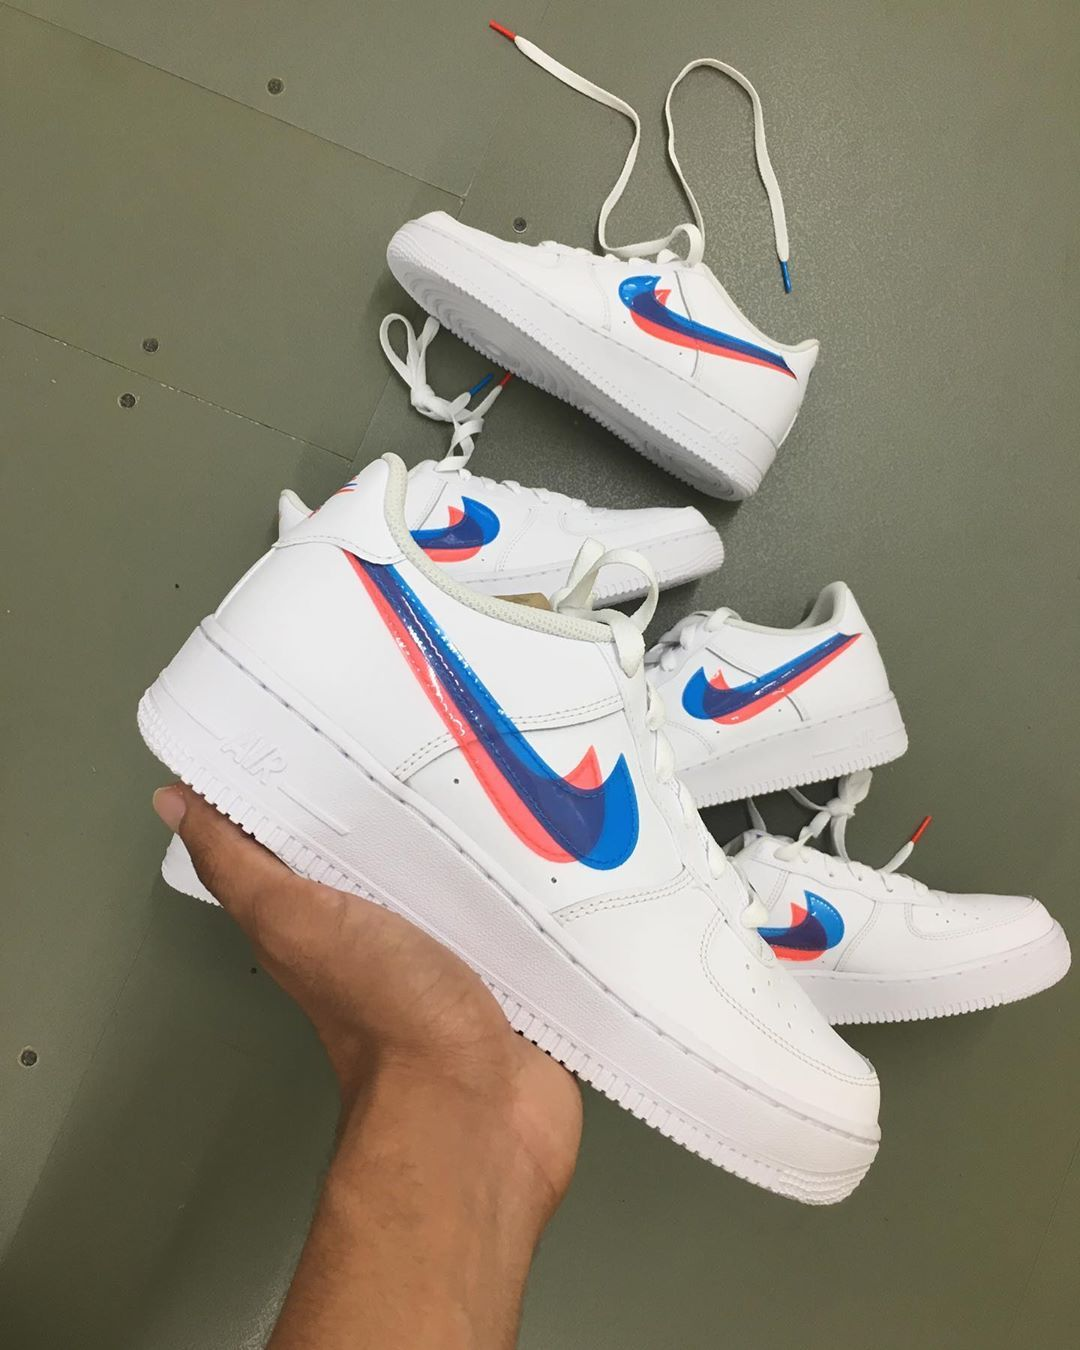 Nike Air Force 1 3D Junior sizes online